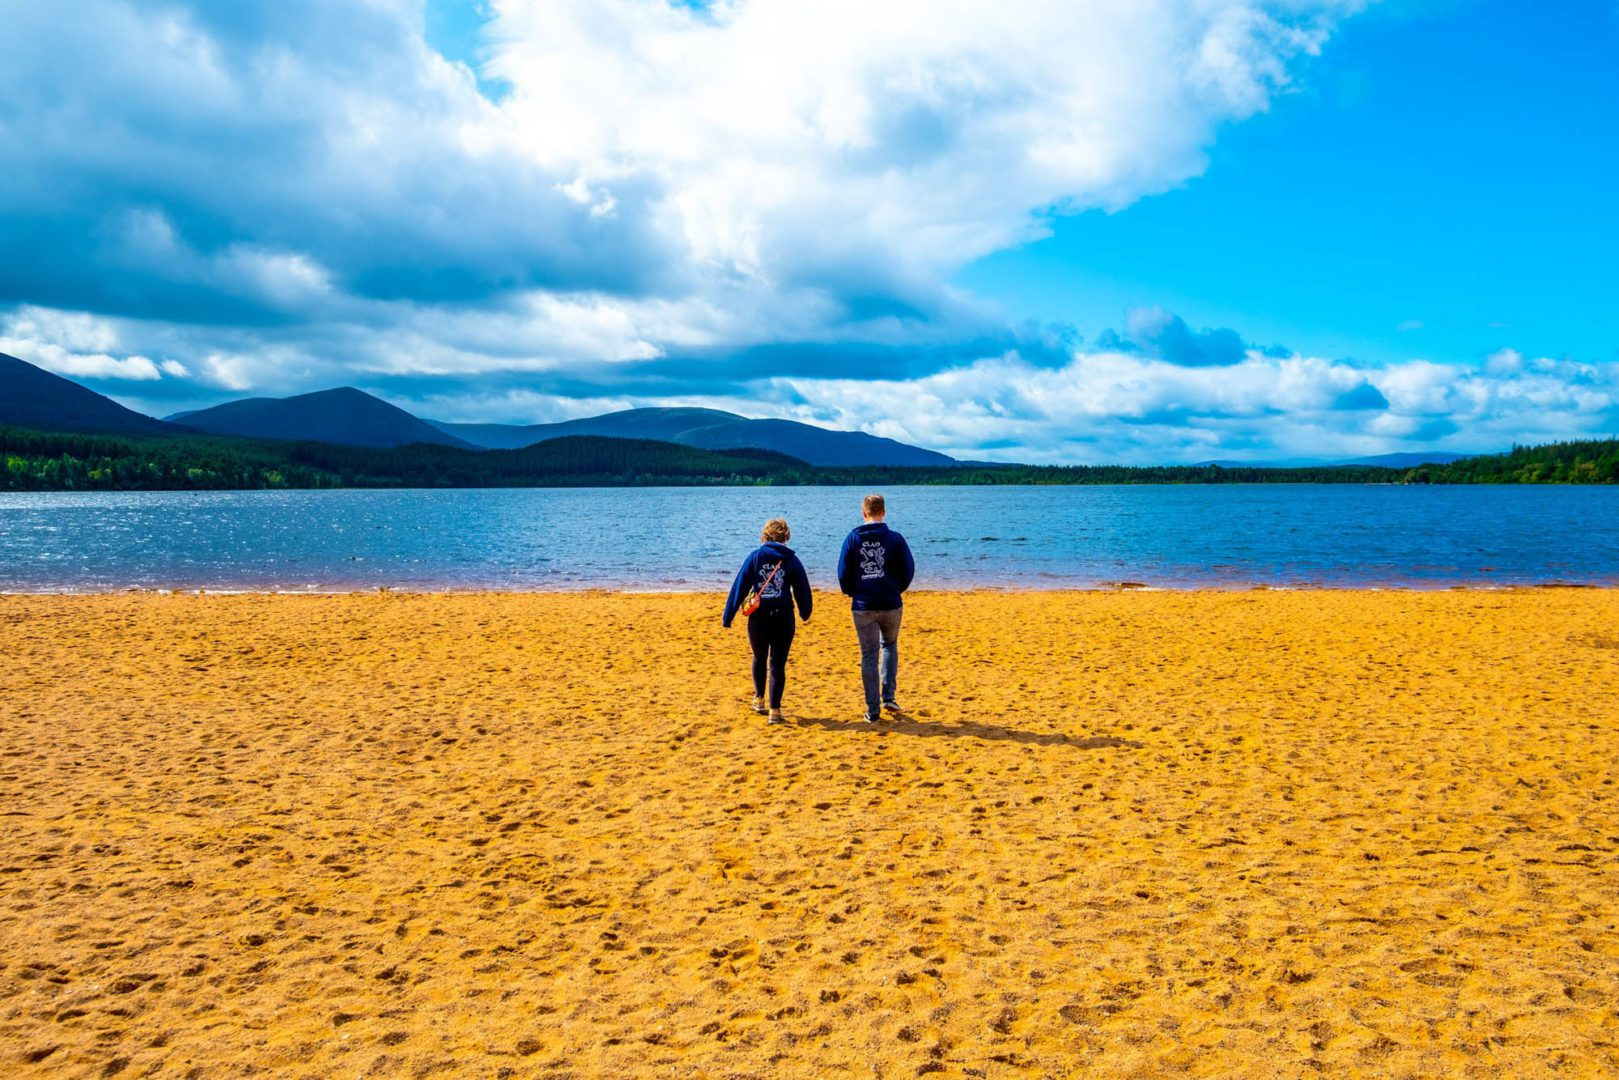 MacBackpackers Tour Loch Morlich - MacBackpackers